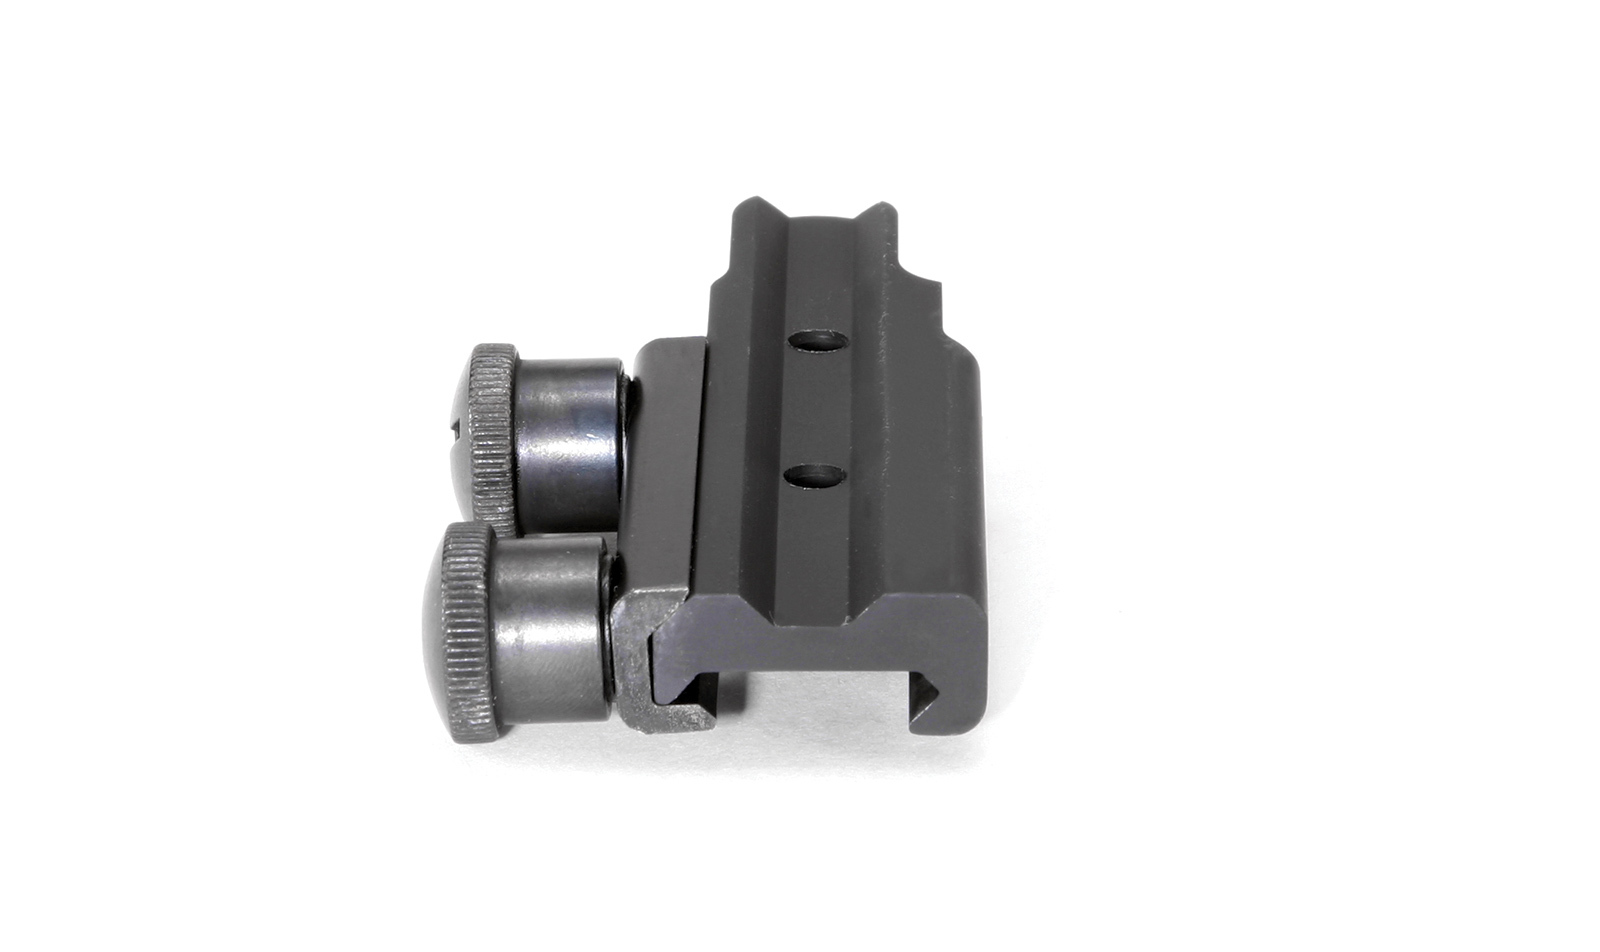 Trijicon ACOG® Extended Eye Relief Picattiny Rail Adapter w/Colt Knobs